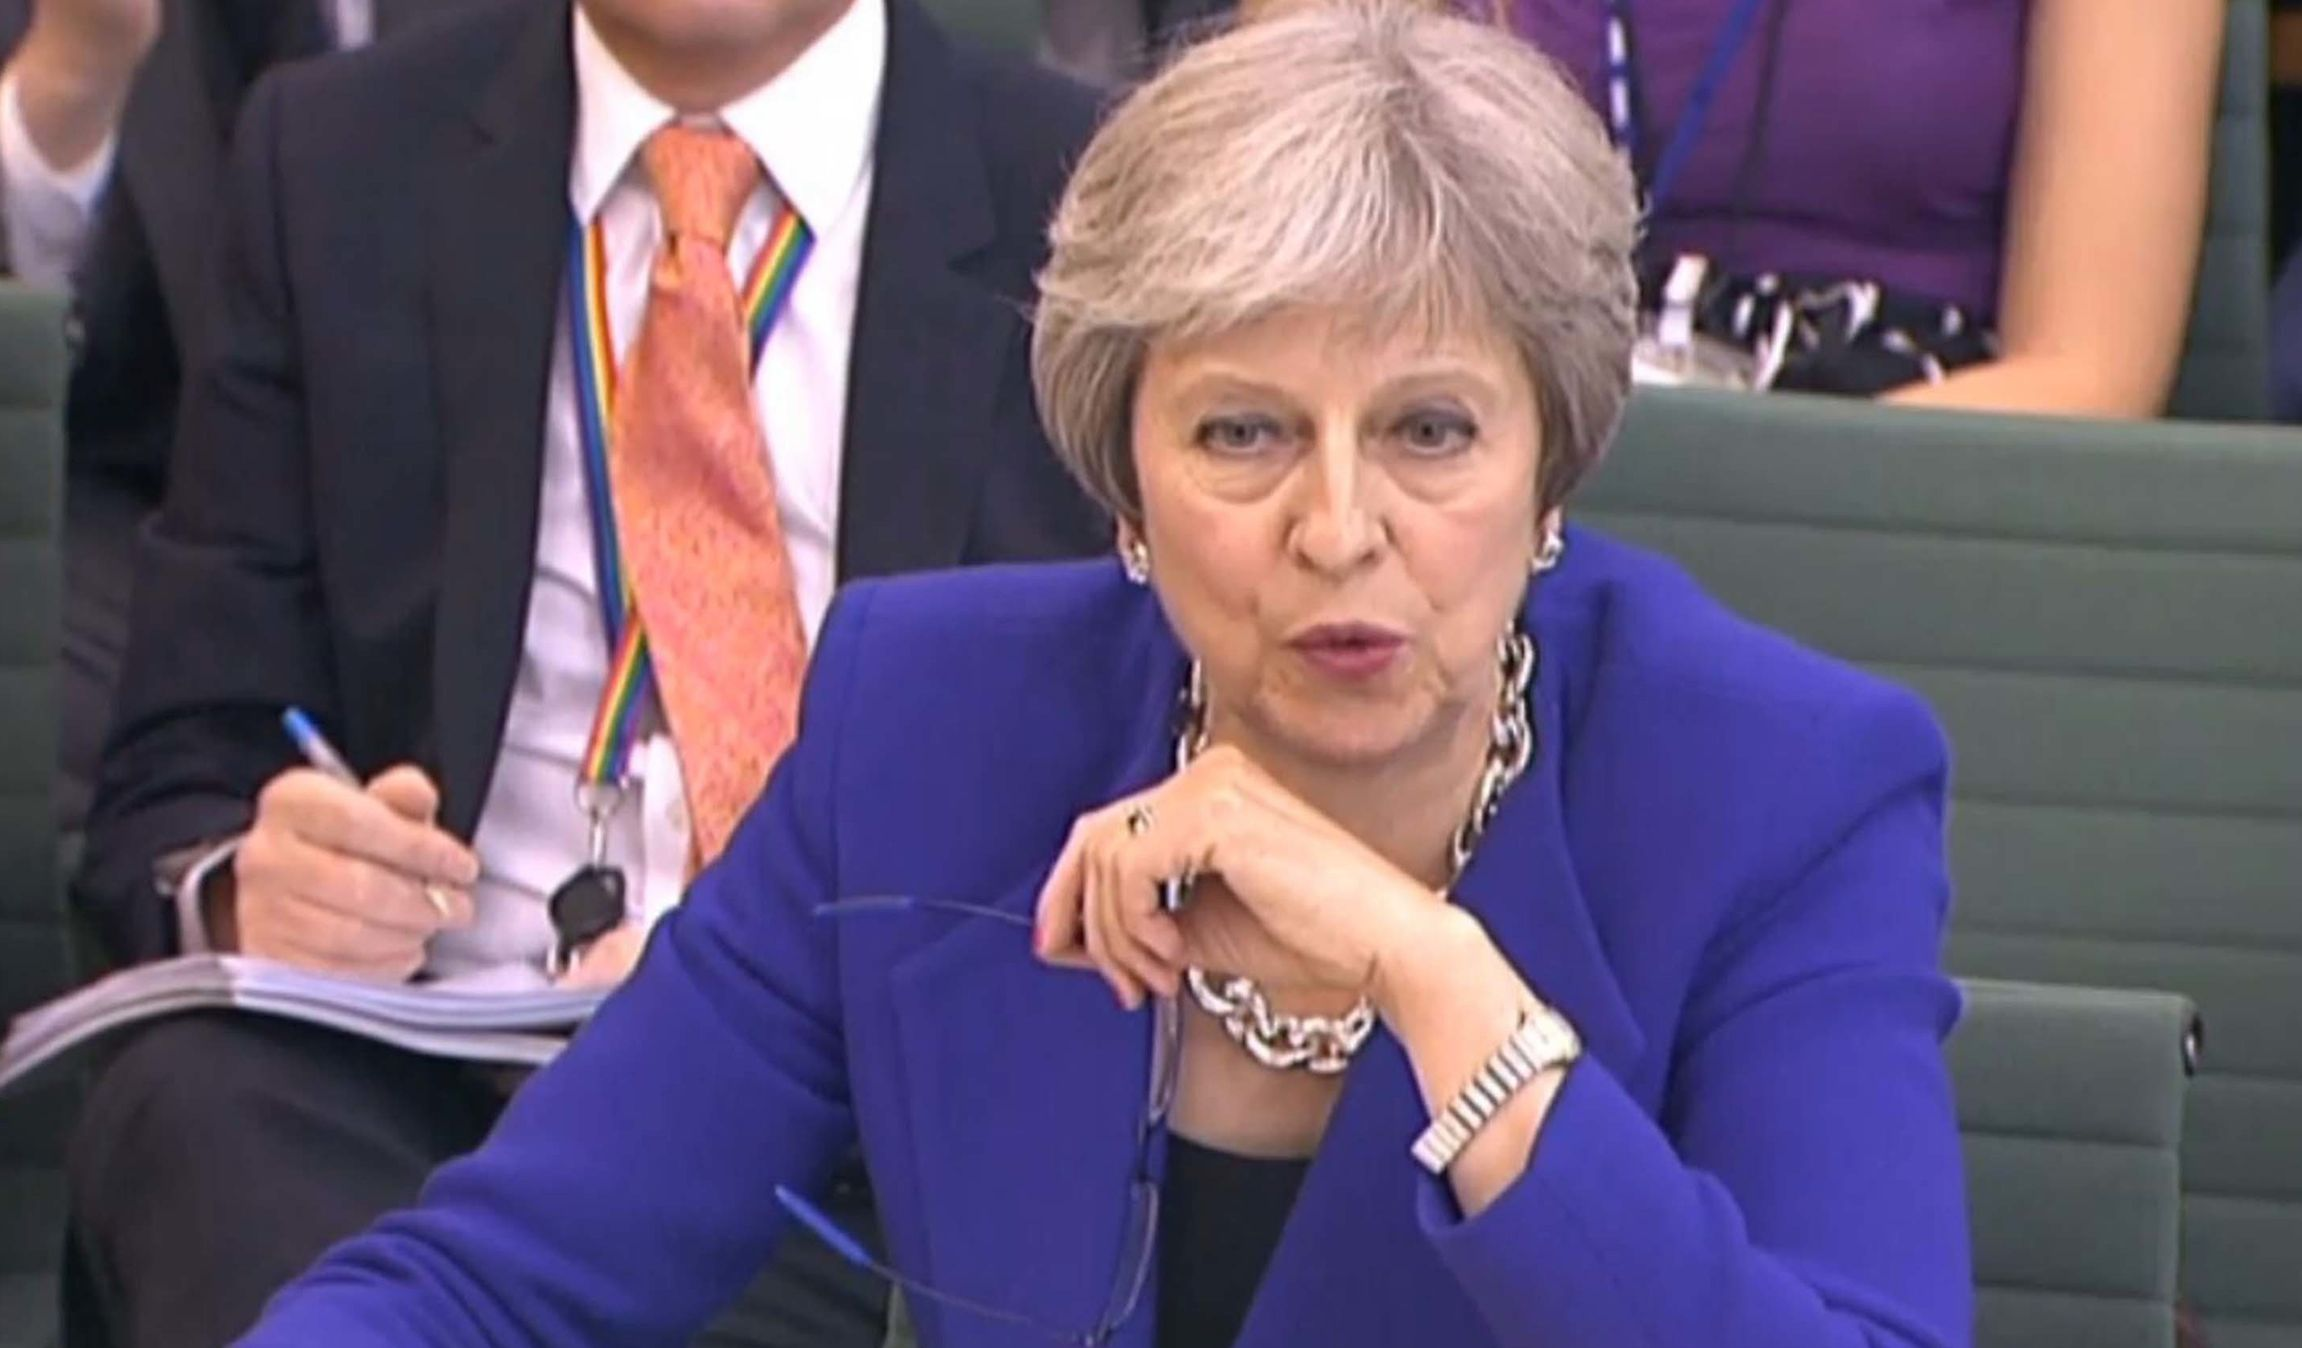 Watch Theresa May slammed by Tory MP: 'When did Brexit mean Remain?'